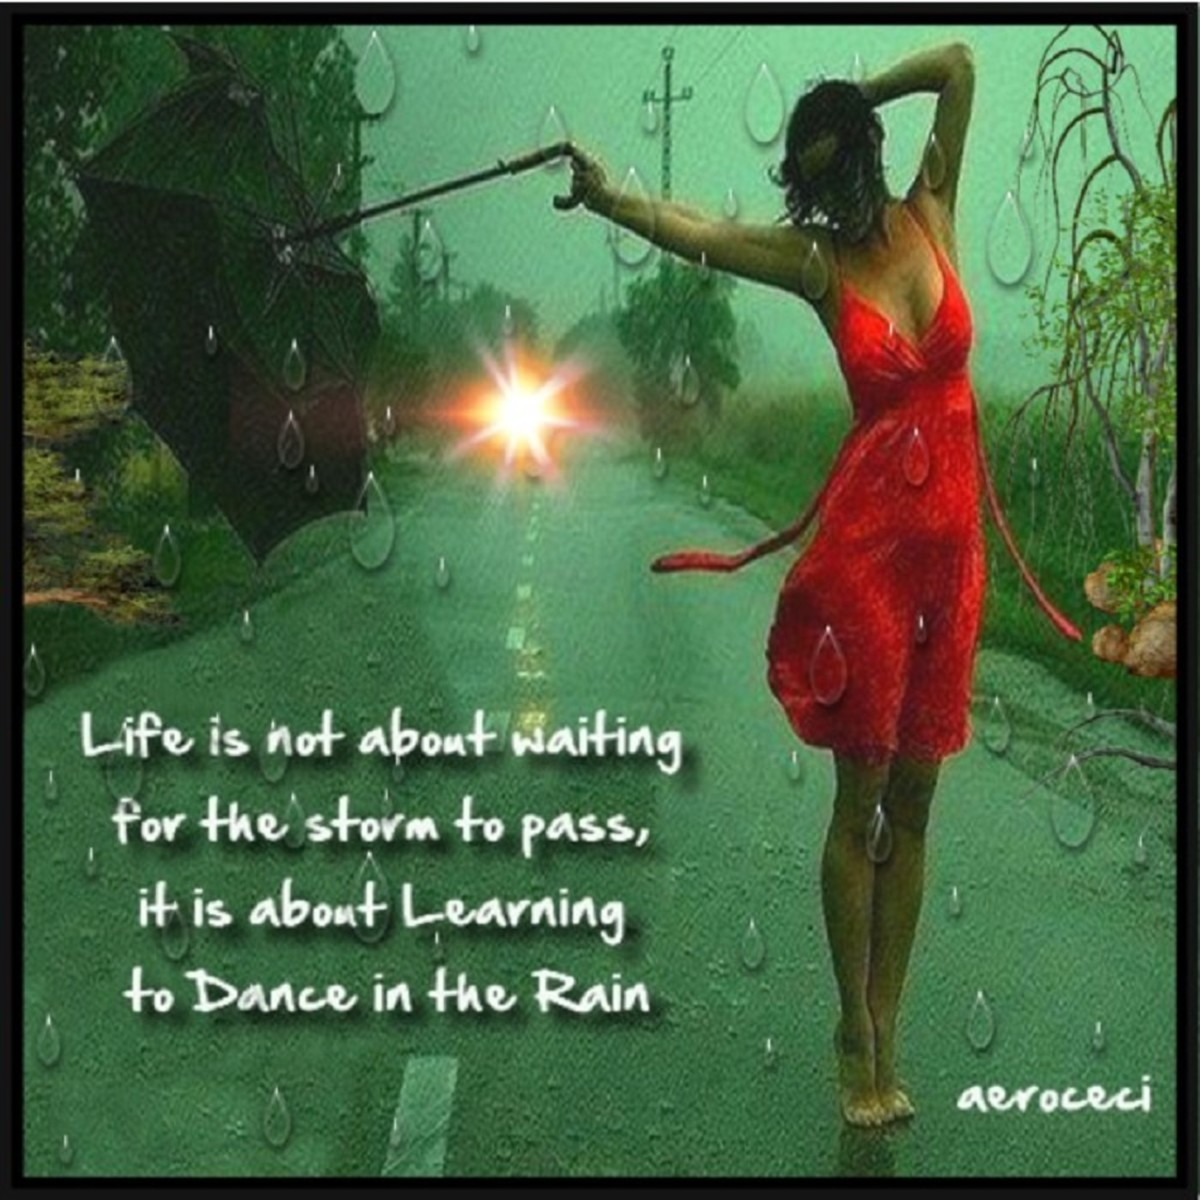 httphubpagescomhublife-isnt-about-waiting-for-the-storm-to-pass-its-about-learning-to-dance-in-the-rain